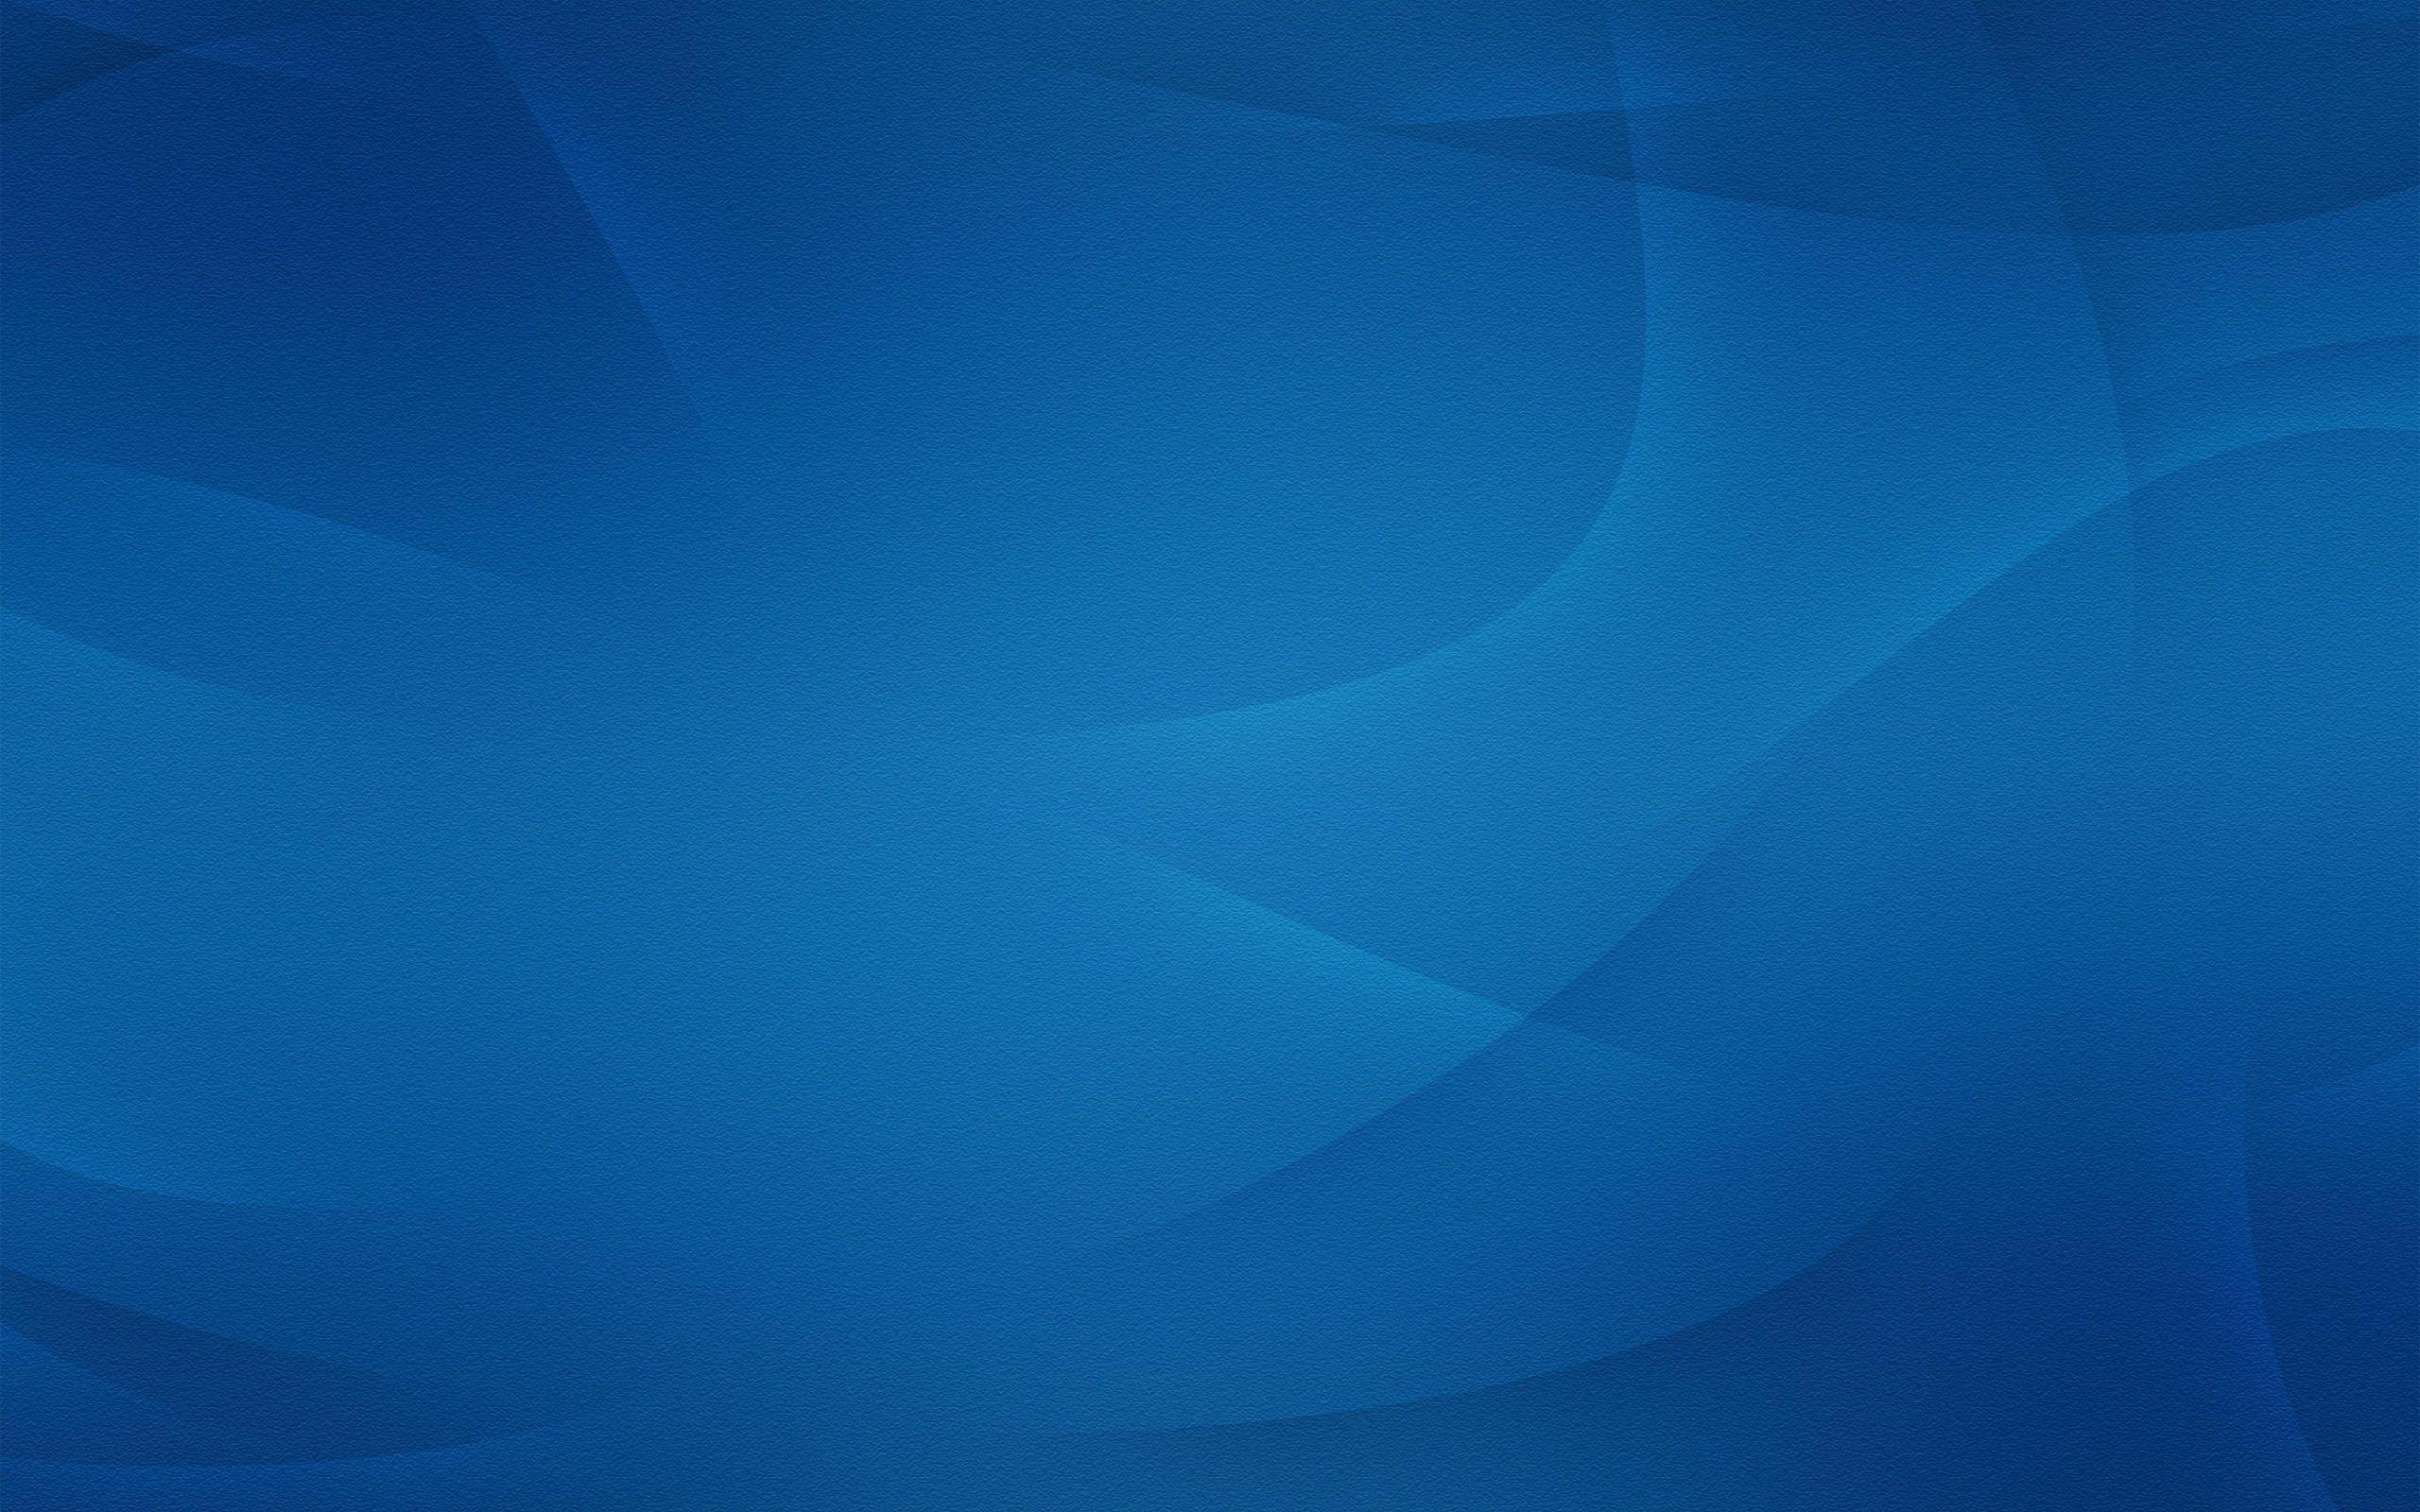 Abstract Blue Wallpapers 2560x1600